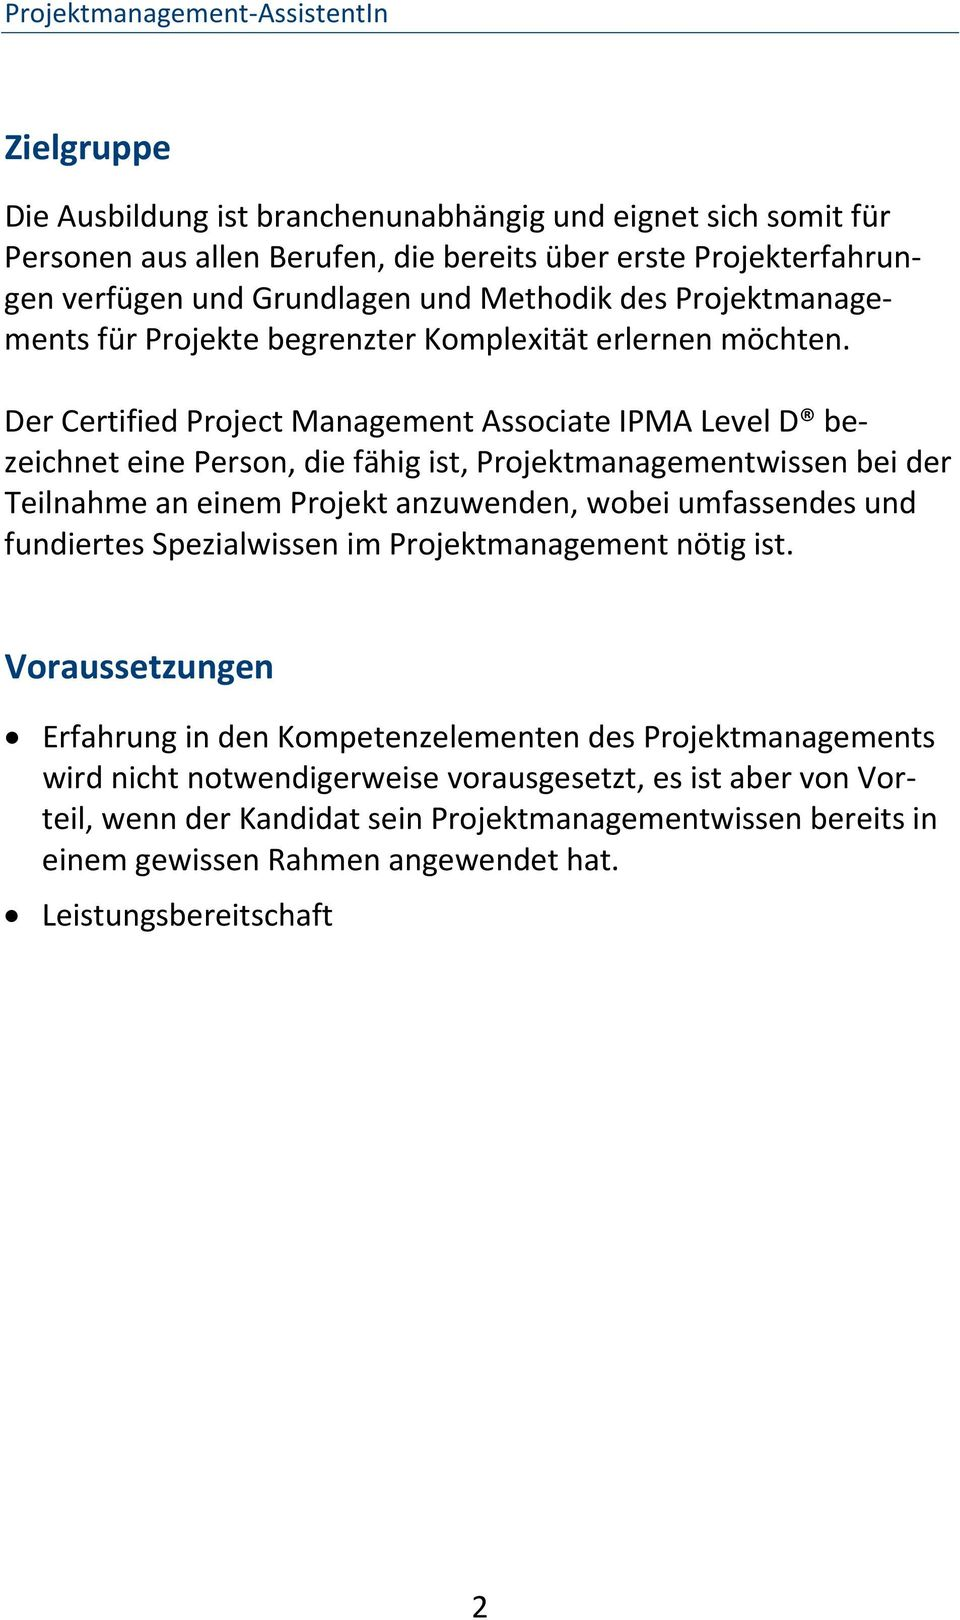 Der Certified Project Management Associate IPMA Level D bezeichnet eine Person, die fähig ist, Projektmanagementwissen bei der Teilnahme an einem Projekt anzuwenden, wobei umfassendes und